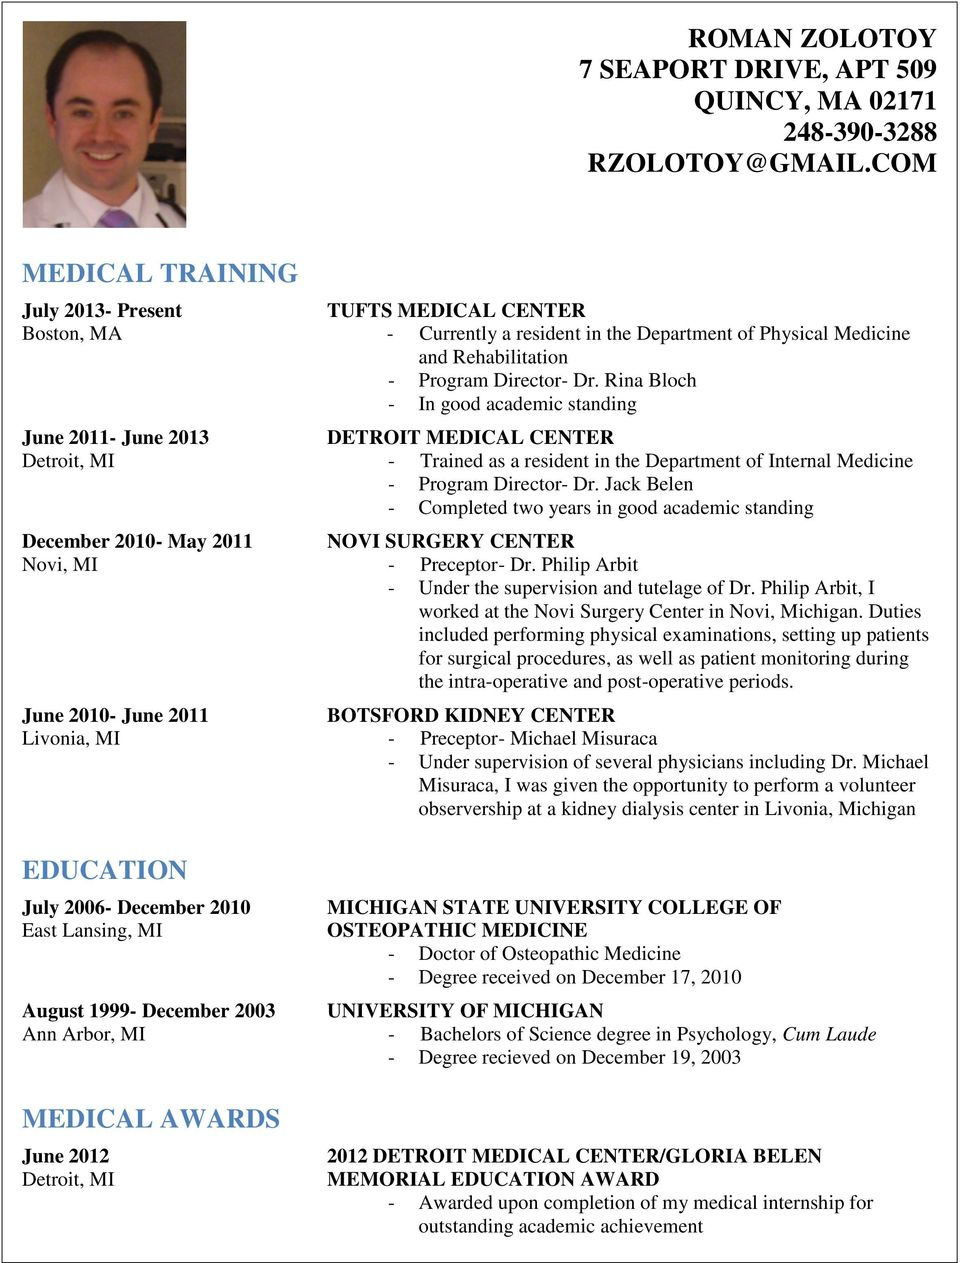 Rina Bloch - In good academic standing June 2011- June 2013 DETROIT MEDICAL CENTER Detroit, MI - Trained as a resident in the Department of Internal Medicine - Program Director- Dr.